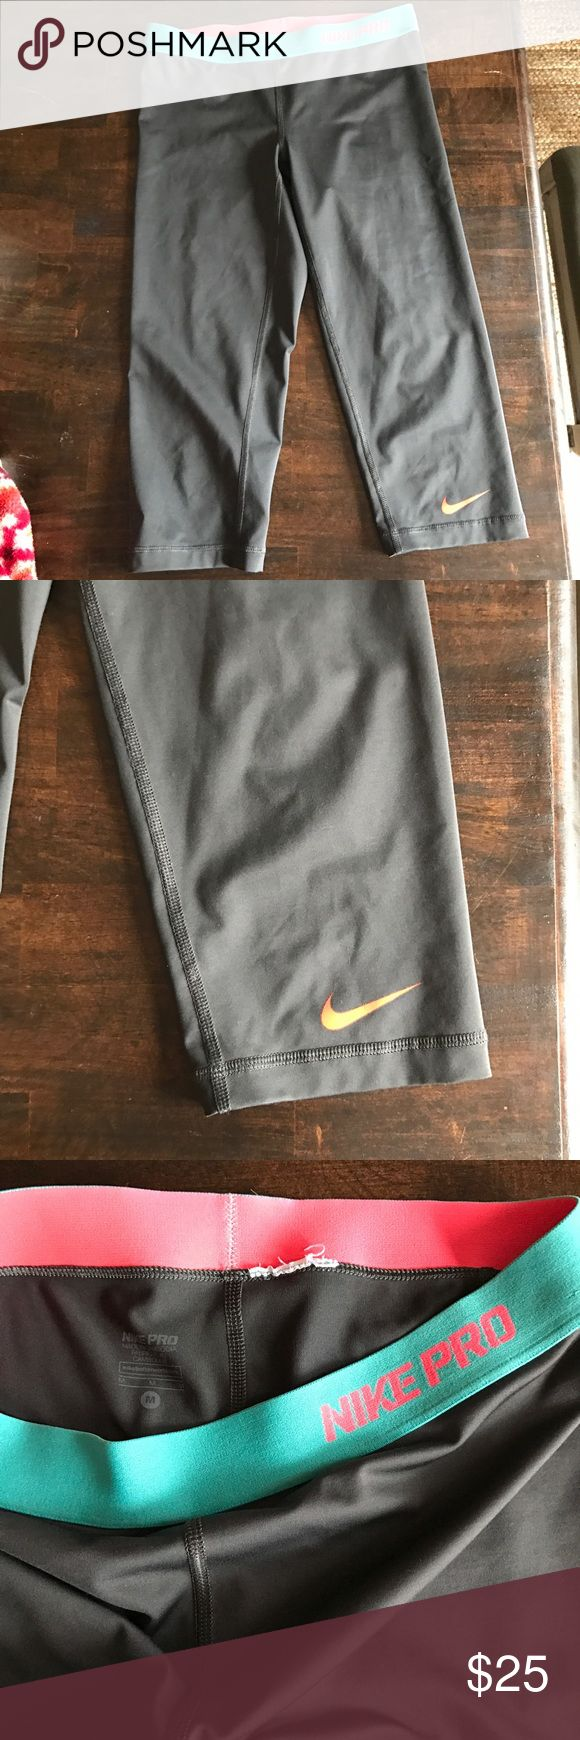 Nike capri leggings Size medium ... Tag was cut off because it bothered me. In great used condition! Nike Pants Leggings